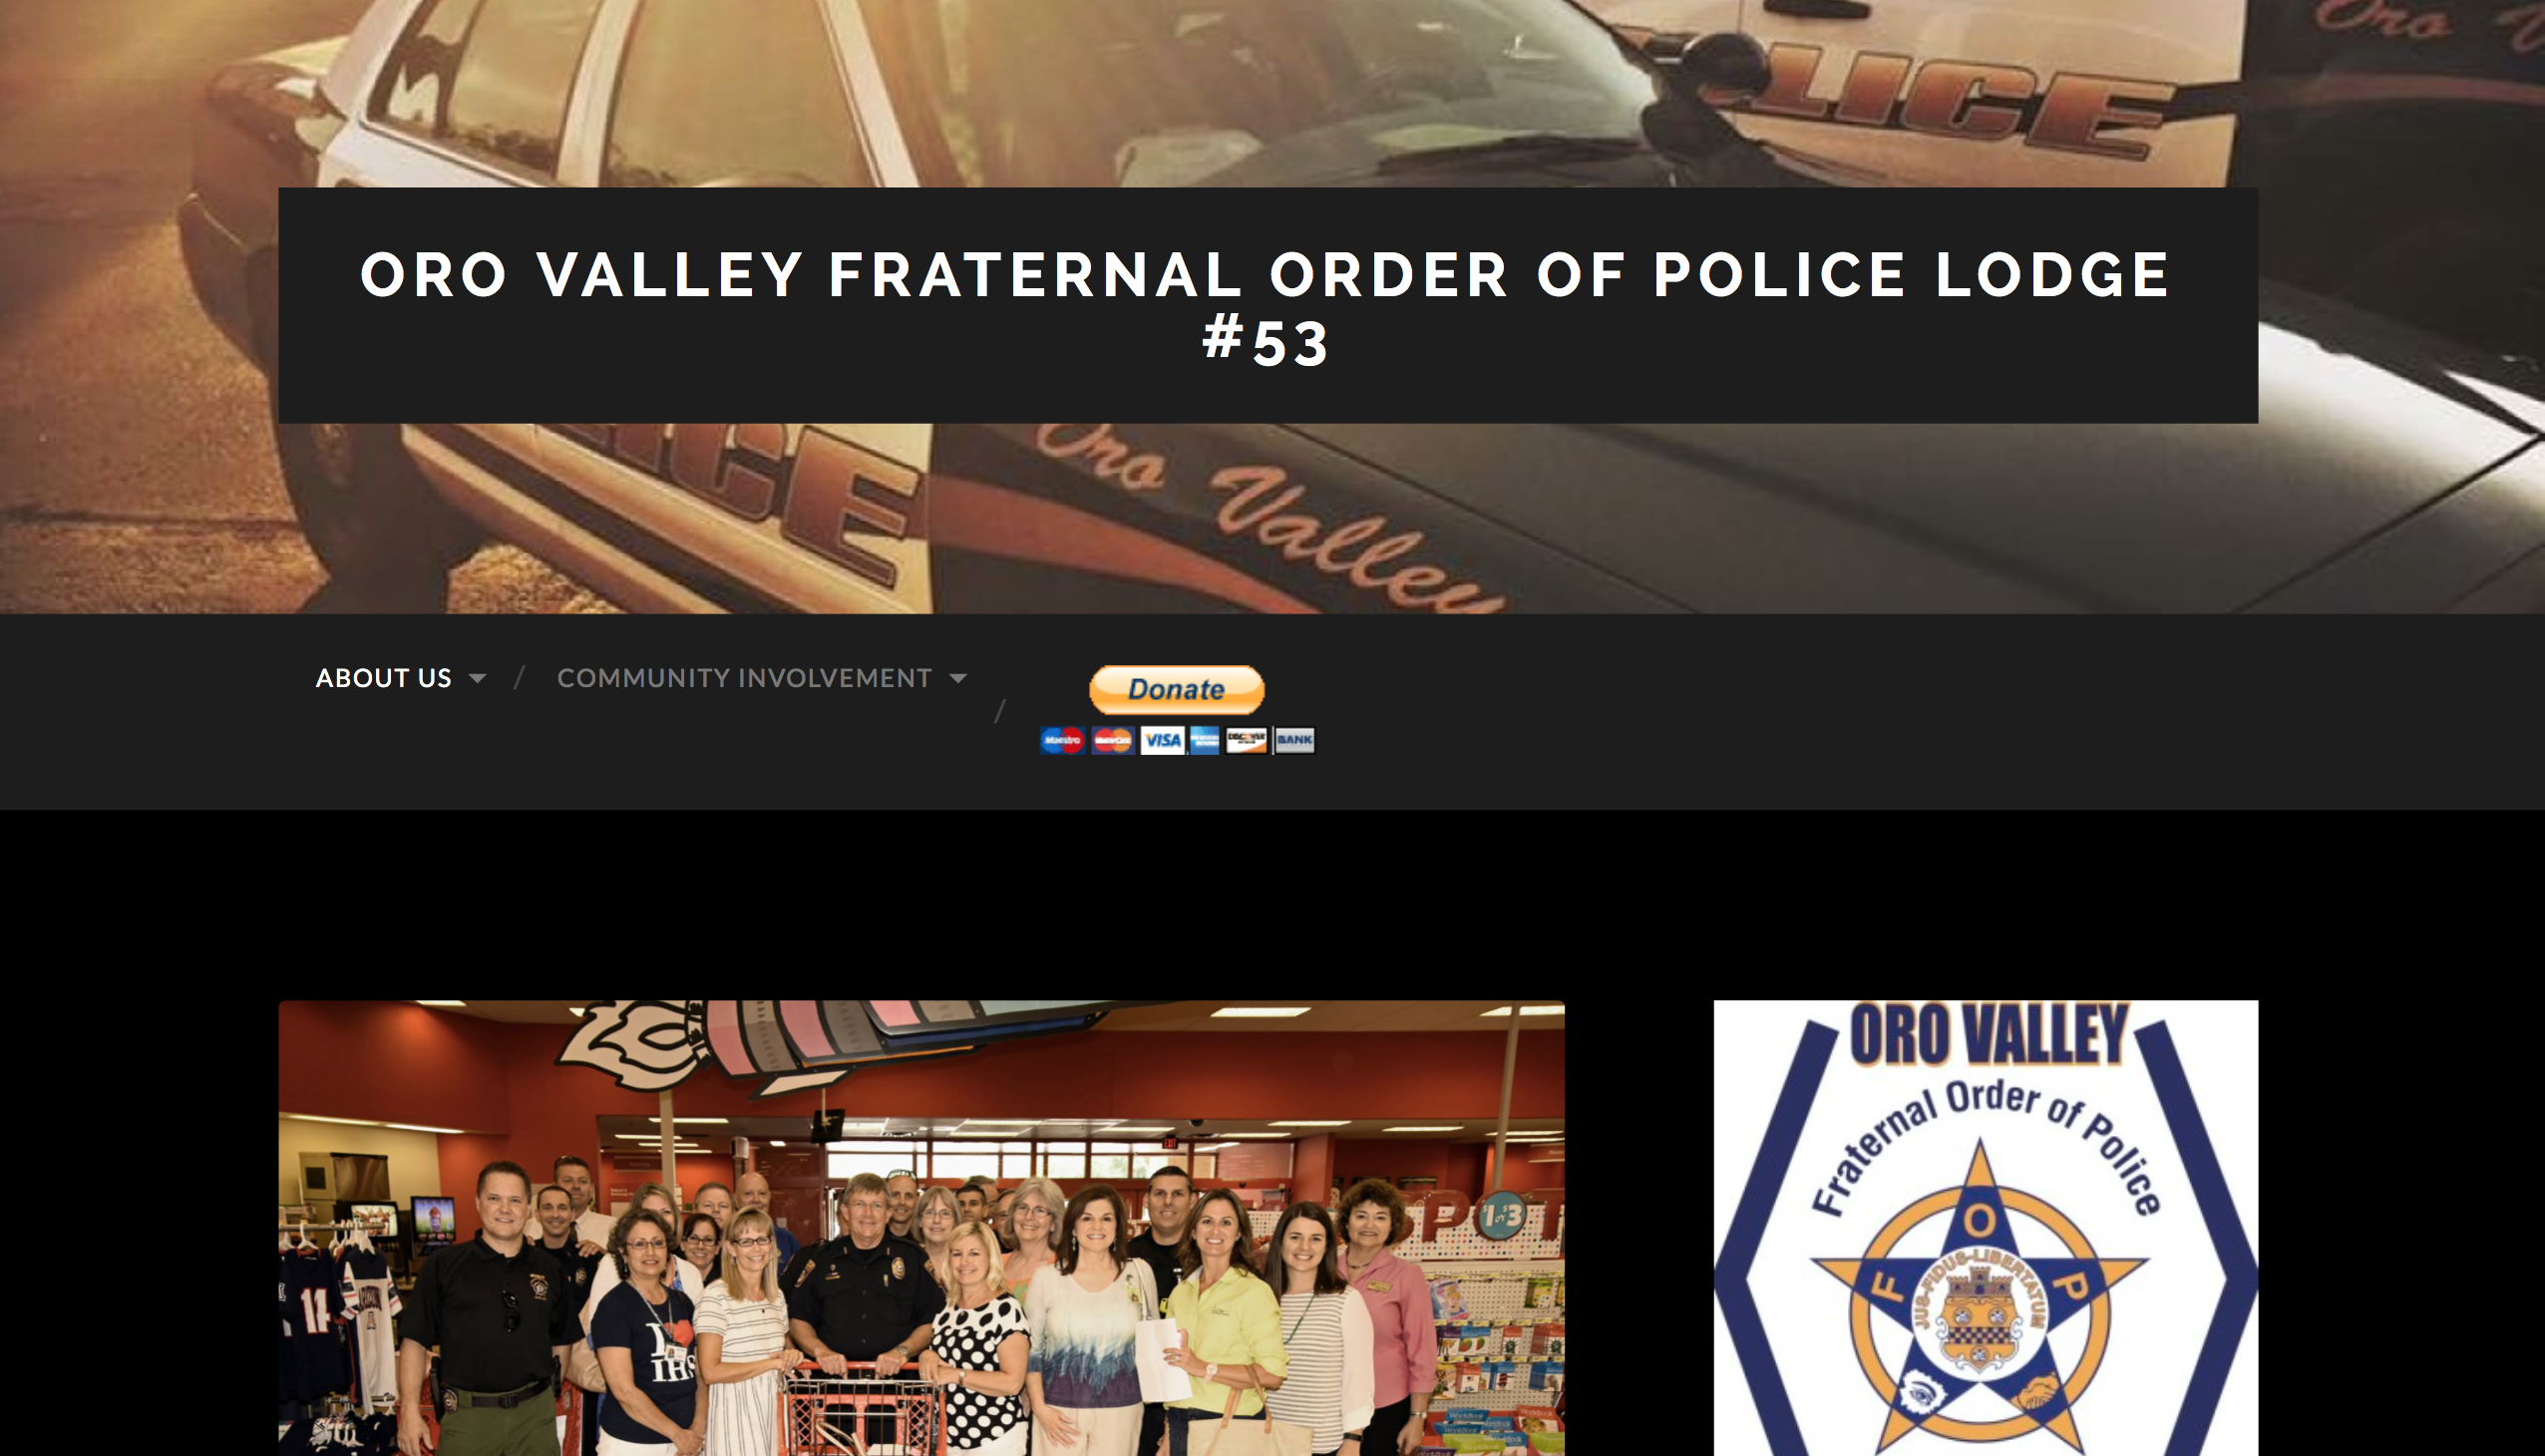 Oro Valley Fraternal Order of Police Lodge #53